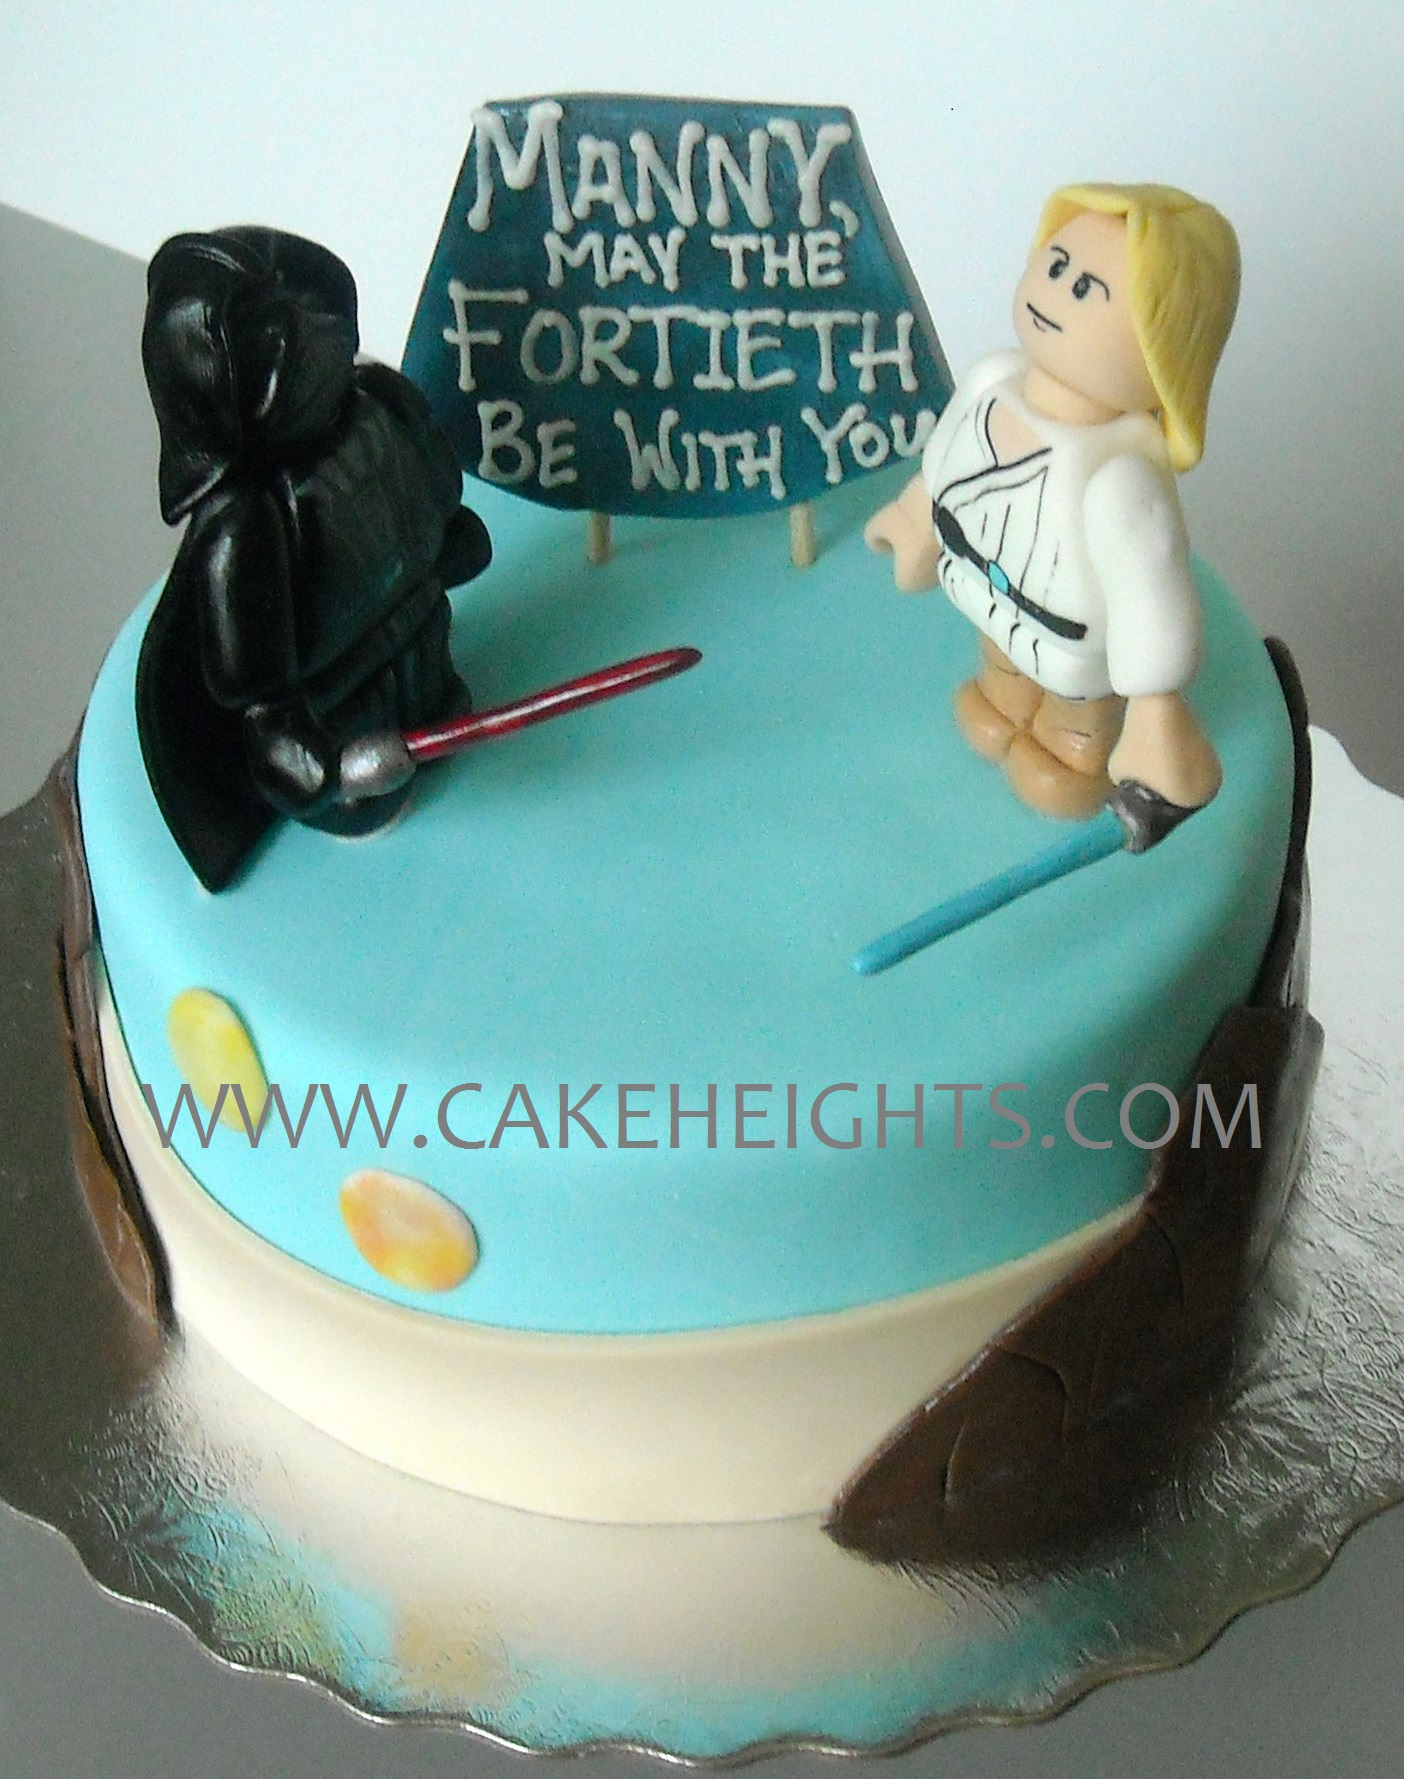 40th be with you!